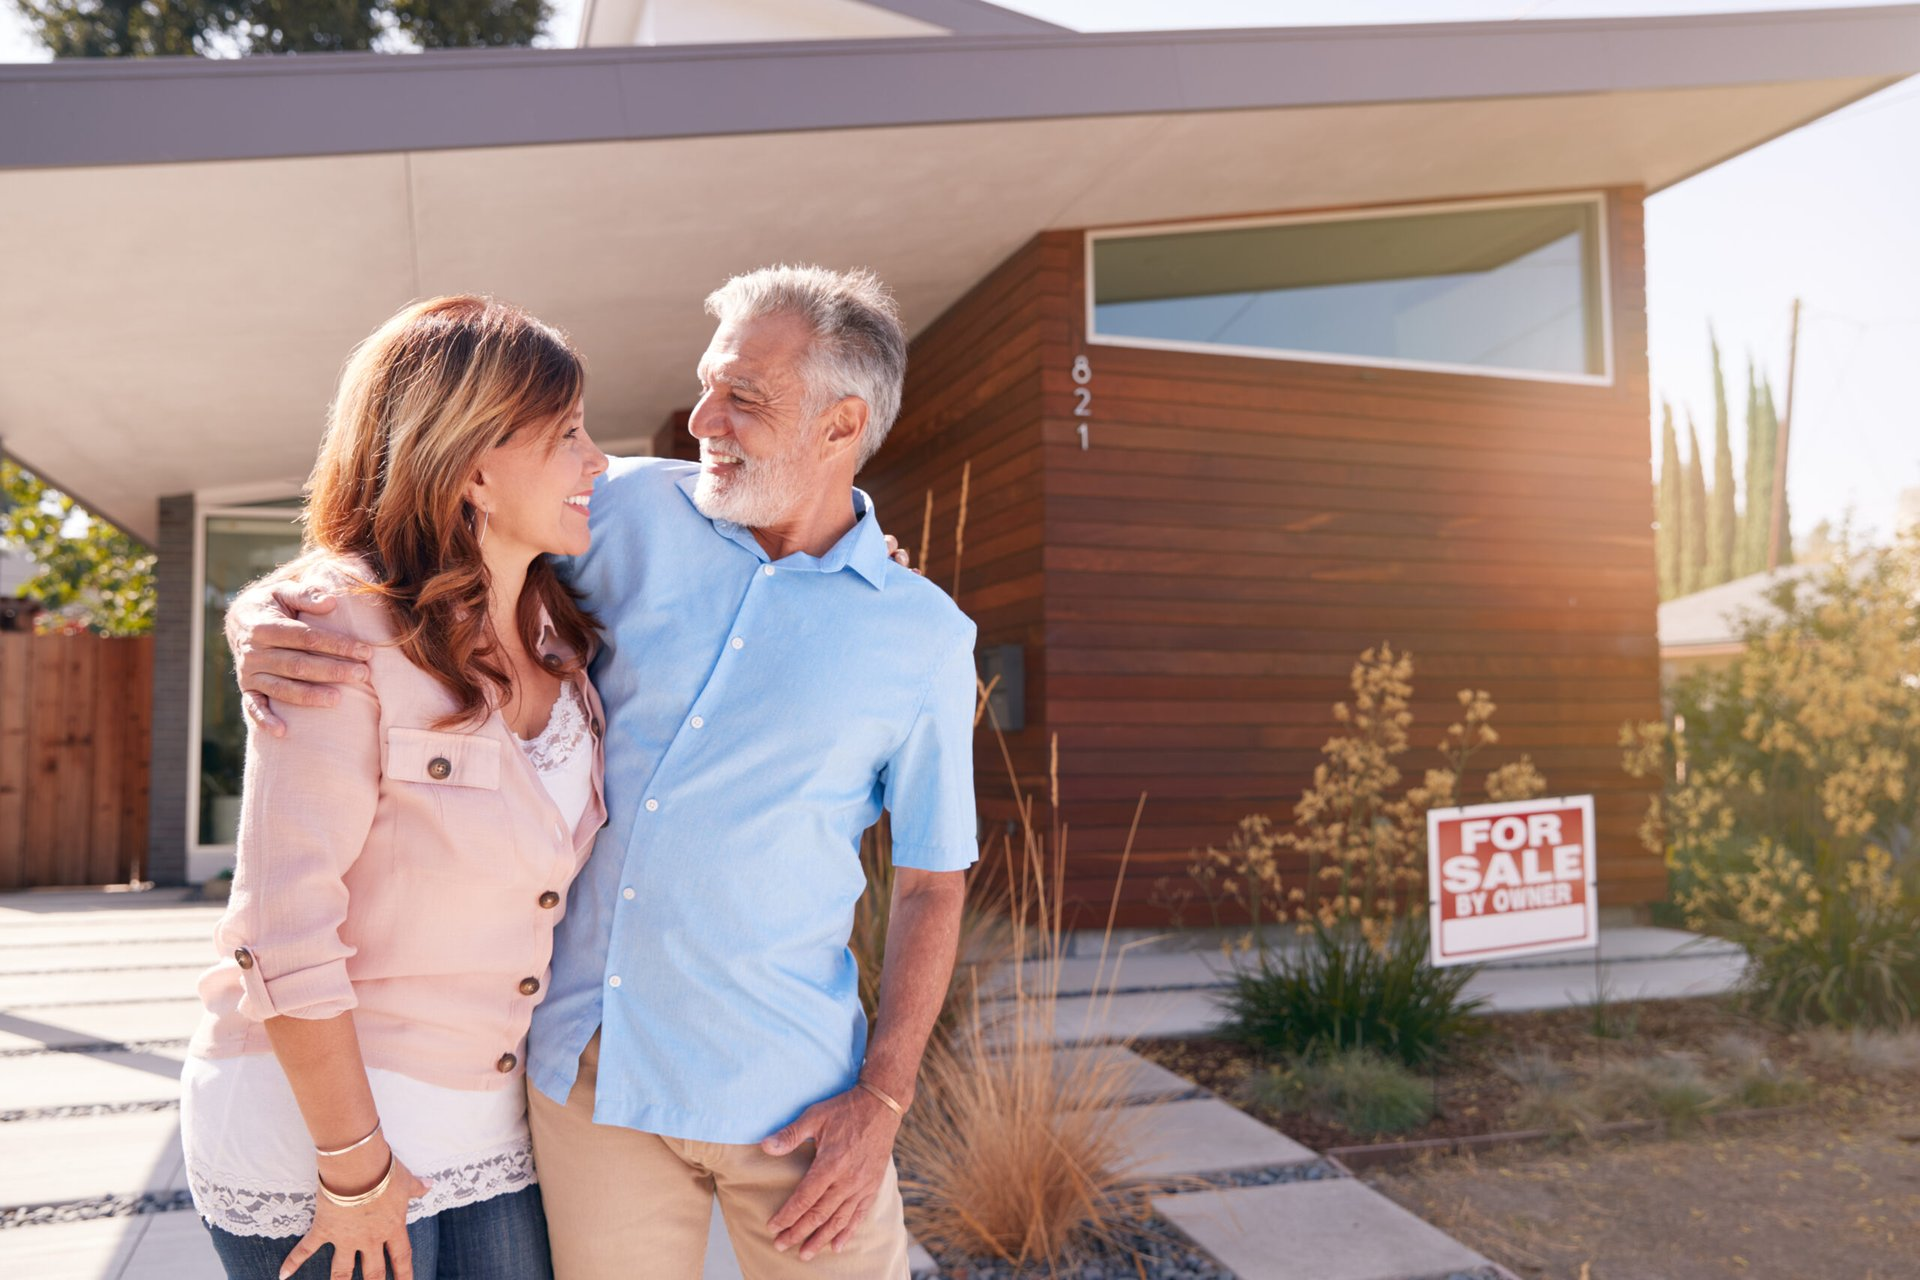 Older couple in front of a house for sale